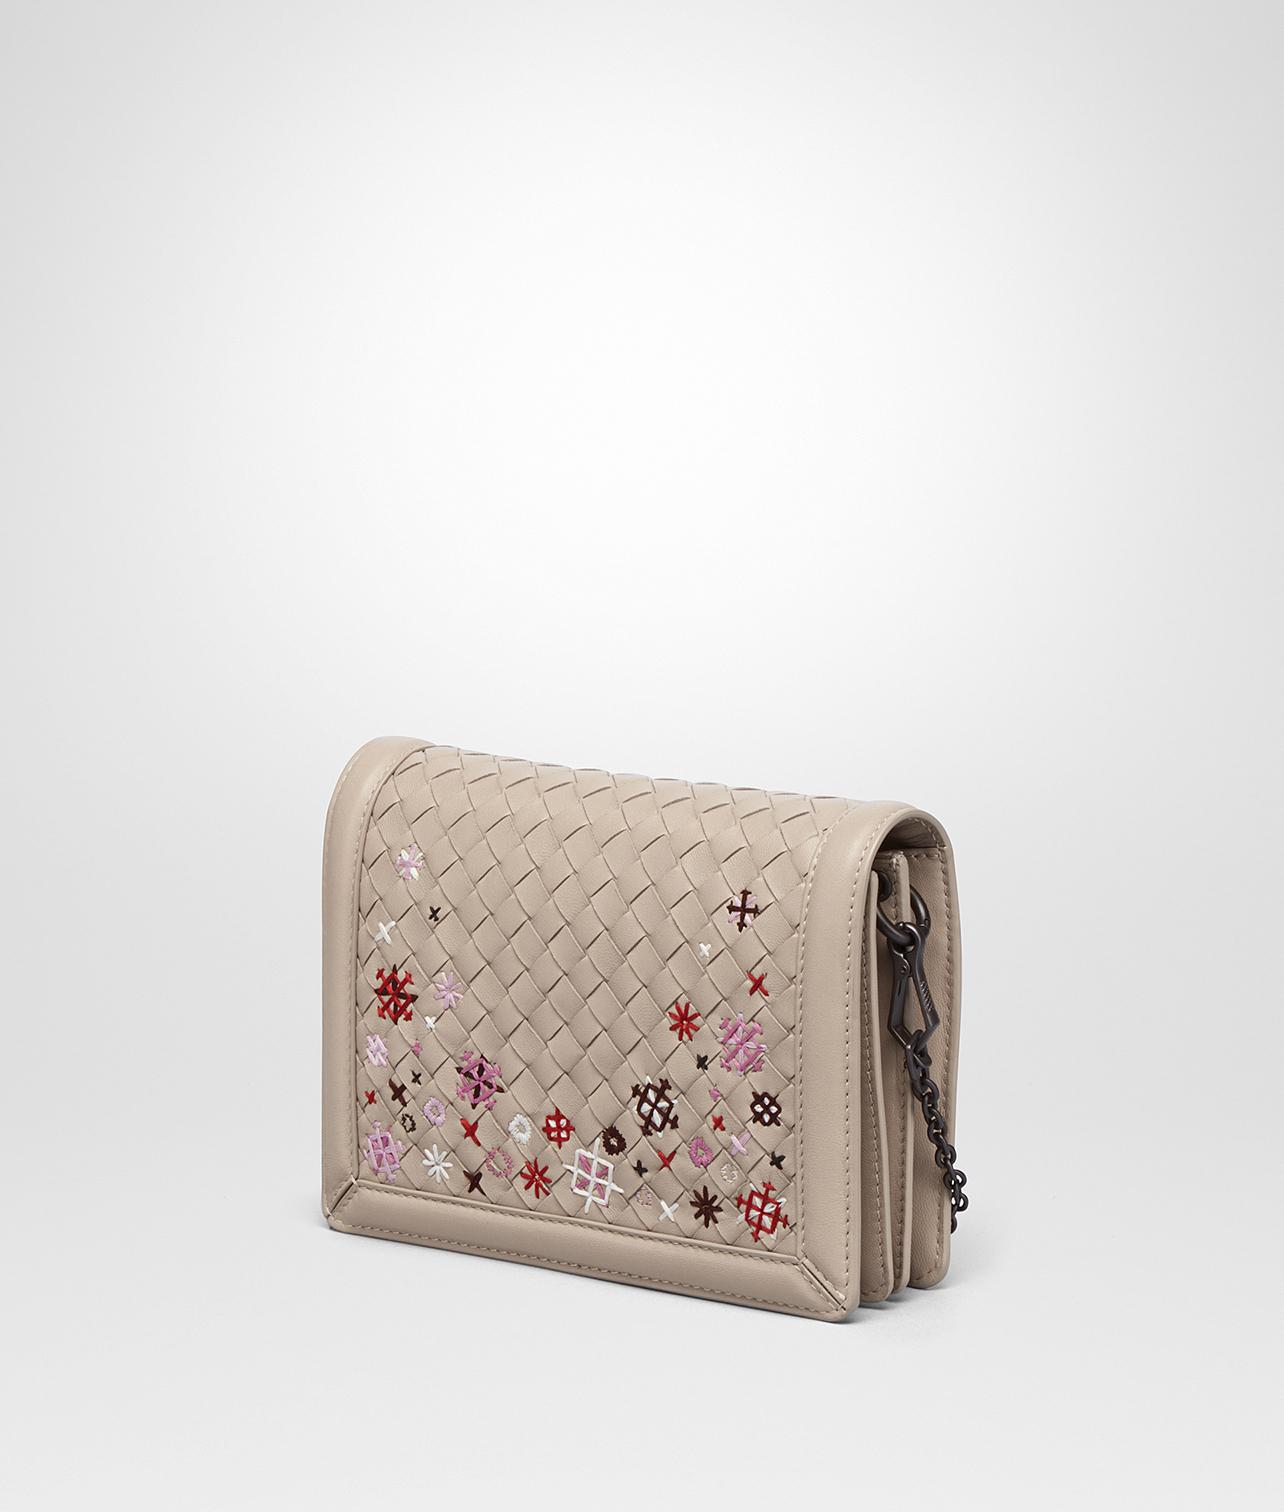 Lyst - Bottega Veneta Mink Intrecciato Meadow Flower Mini Montebello Bag b5daa3a2145ee